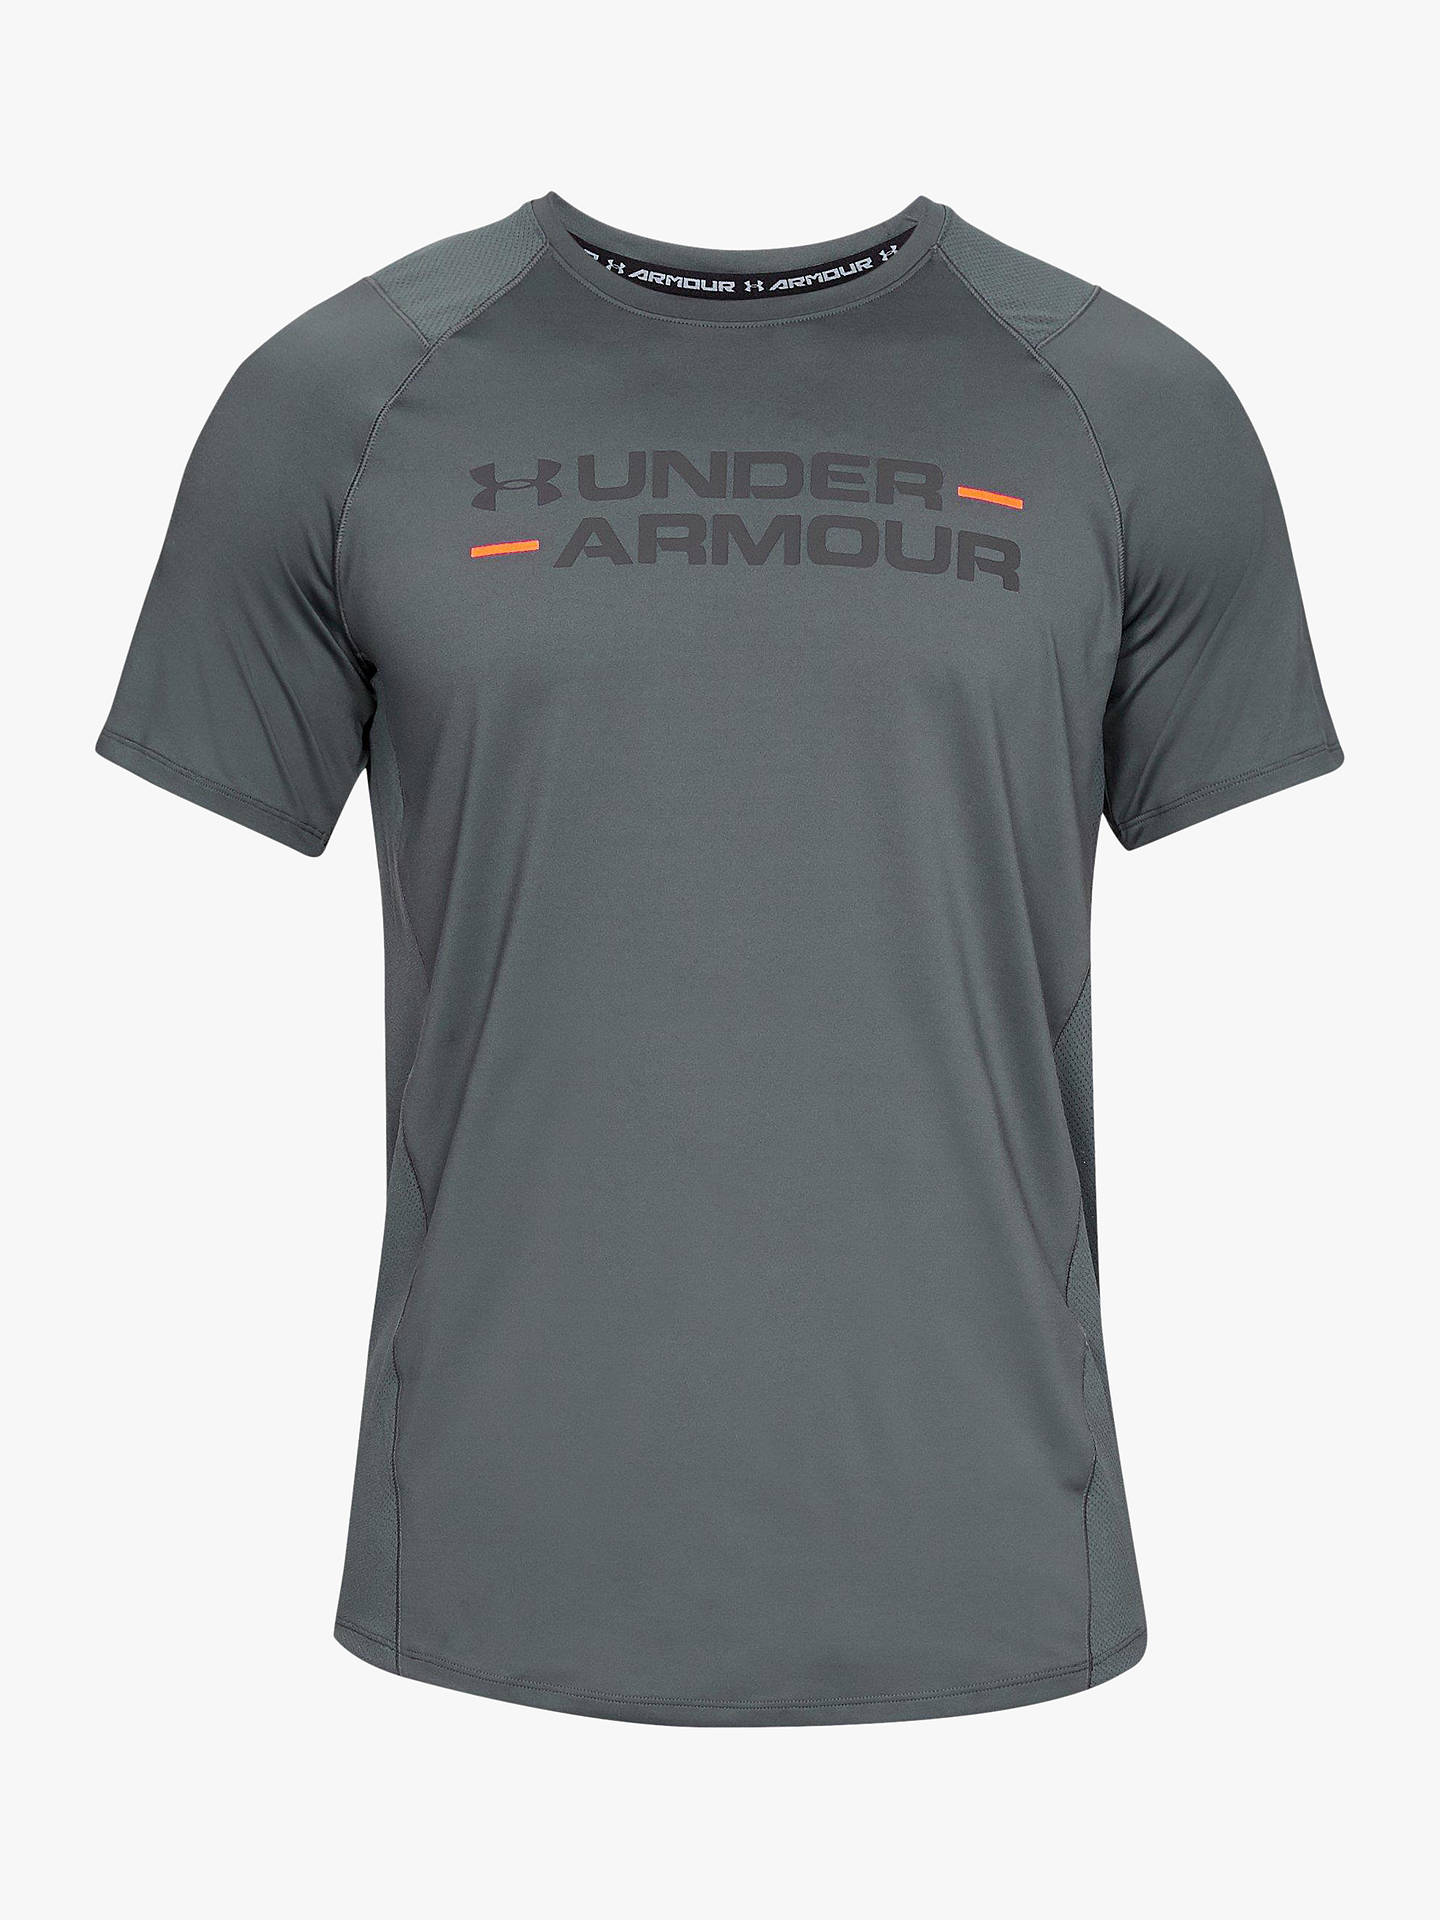 073f4ef7f Under Armour MK-1 Wordmark Short Sleeve T-Shirt at John Lewis & Partners